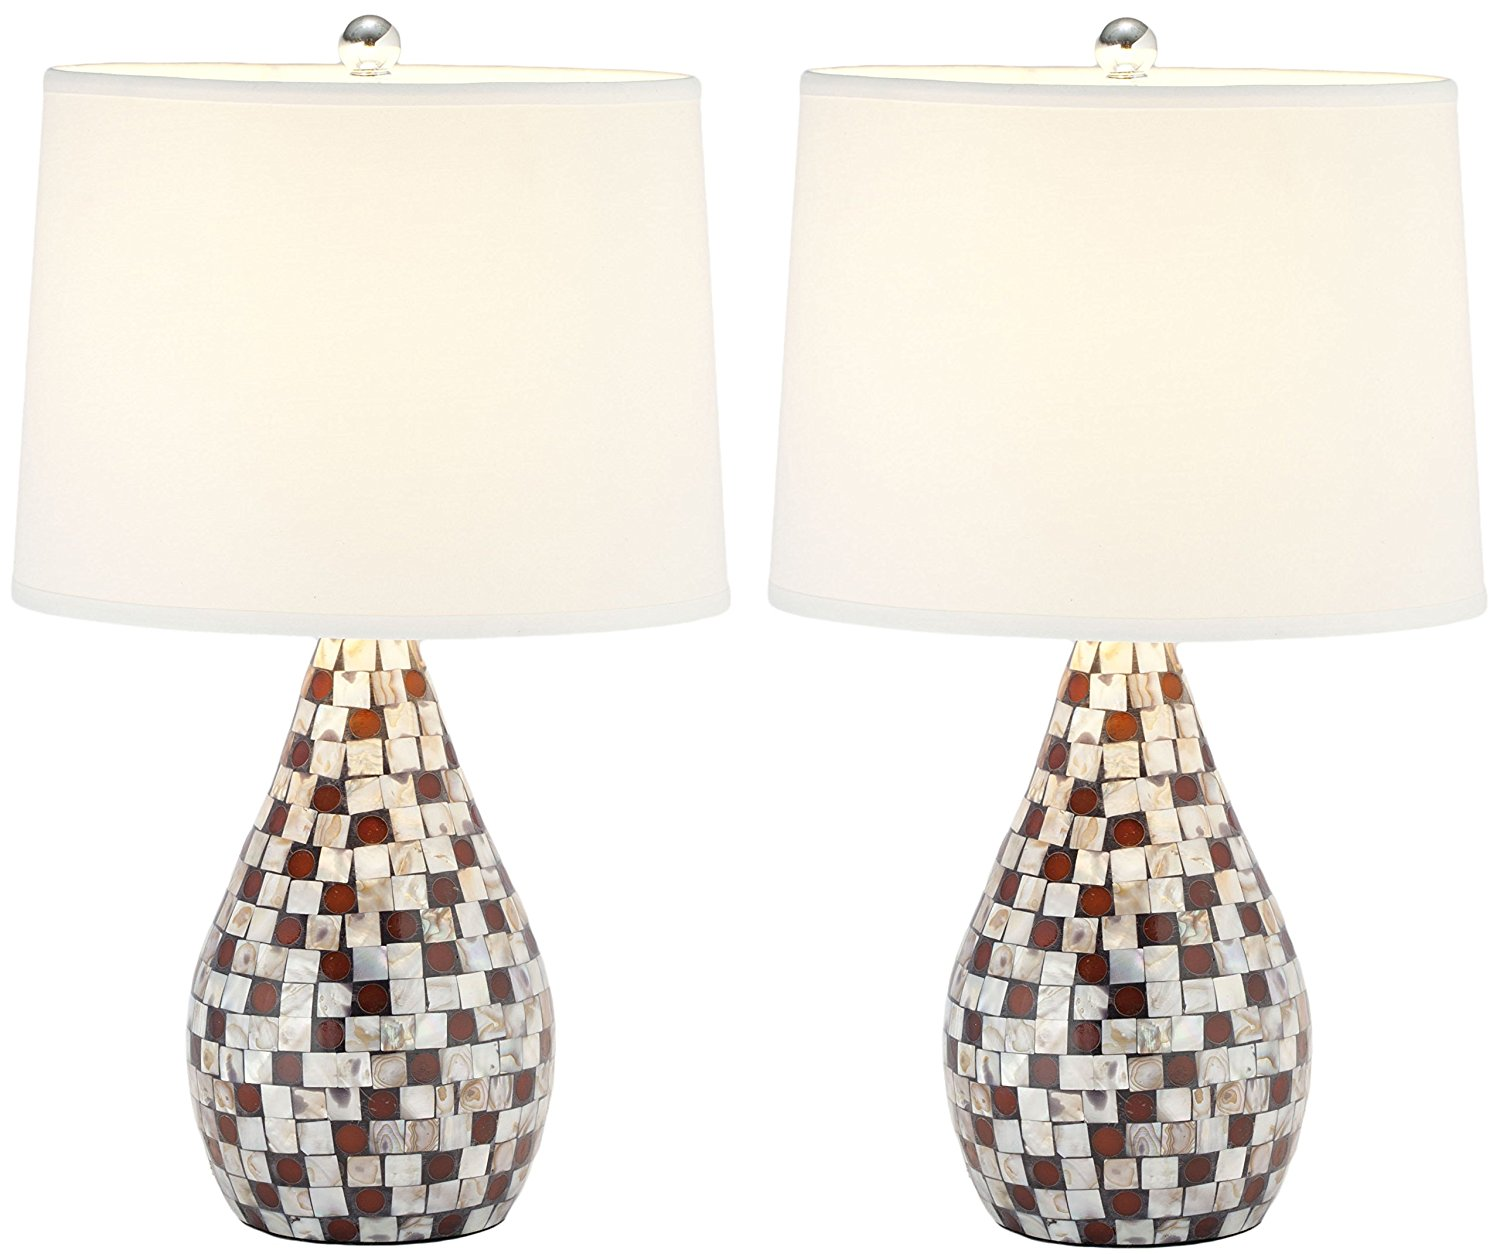 Safavieh Lighting Collection Lauralie Brown Capiz Shell 19.25-inch Table Lamp (Set of 2)